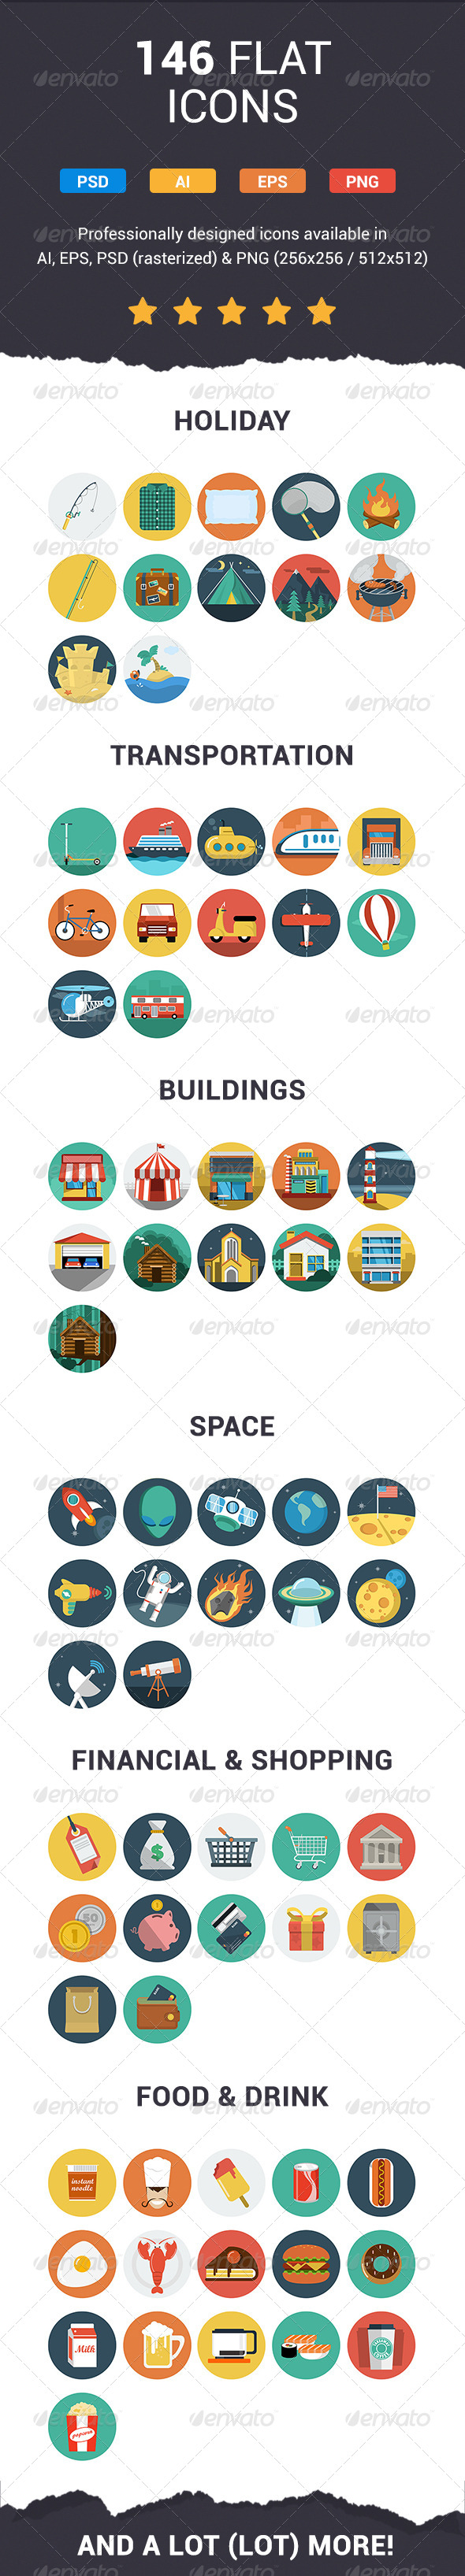 146 Modern Flat Icons - Abstract Icons